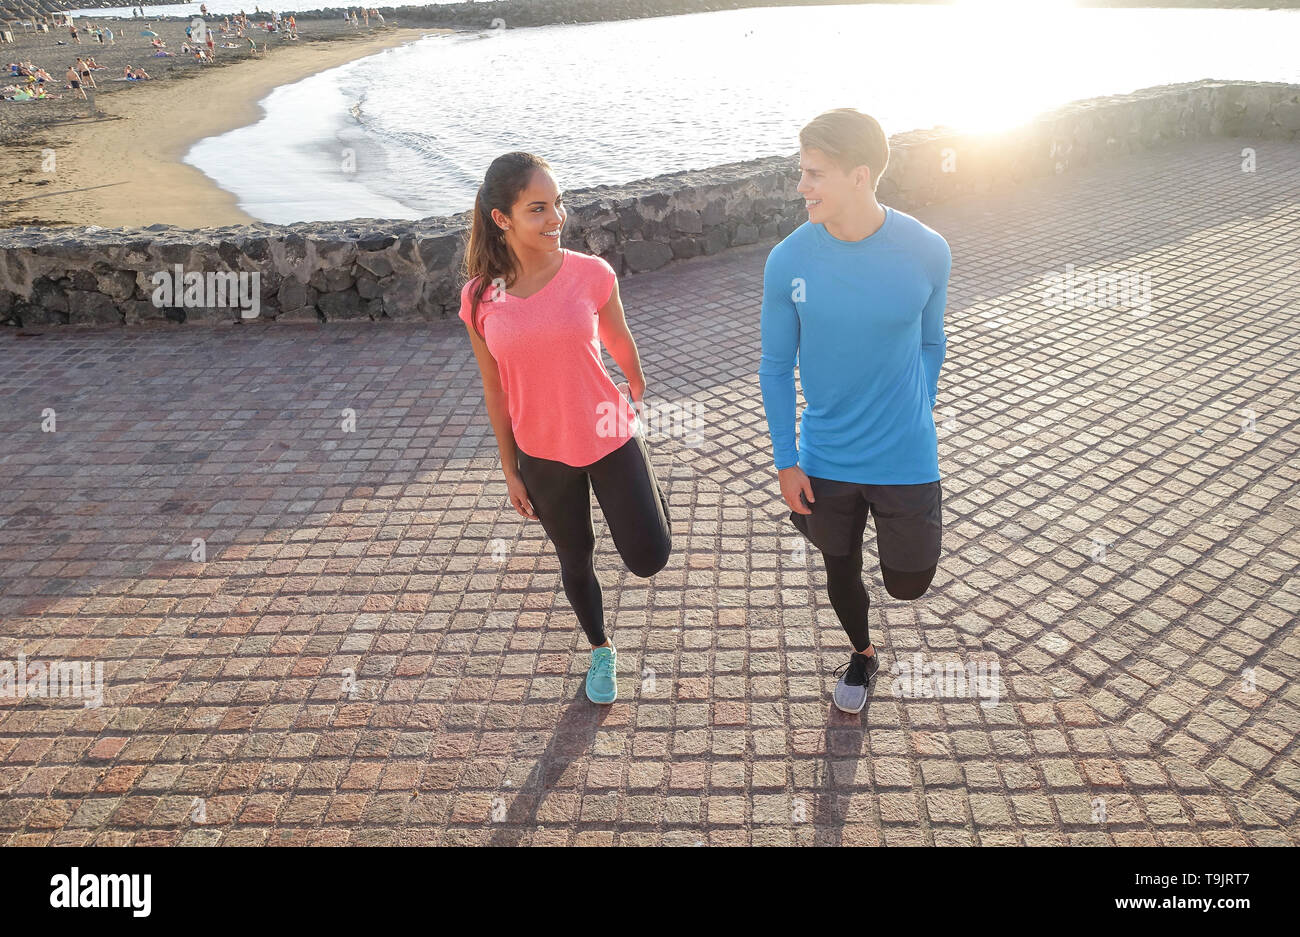 Sporty couple stretching legs next to the beach - Young lovers traning together on summer day outdoor - Sport, relationship, healthy lifestyle concept - Stock Image